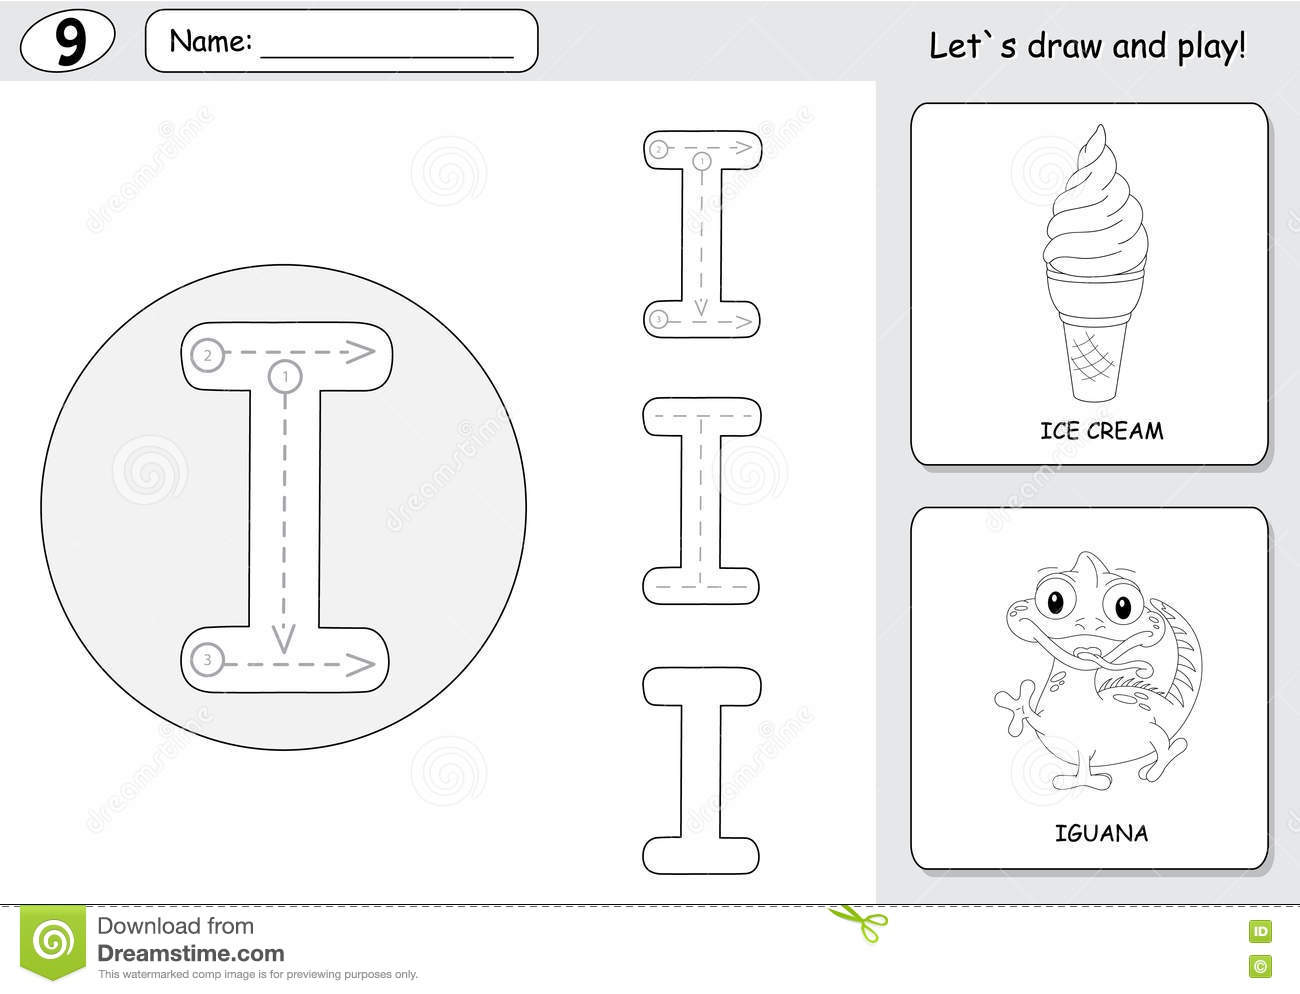 Cartoon Ice Cream And Iguana Alphabet Tracing Worksheet Writing A Z And Educational Game For